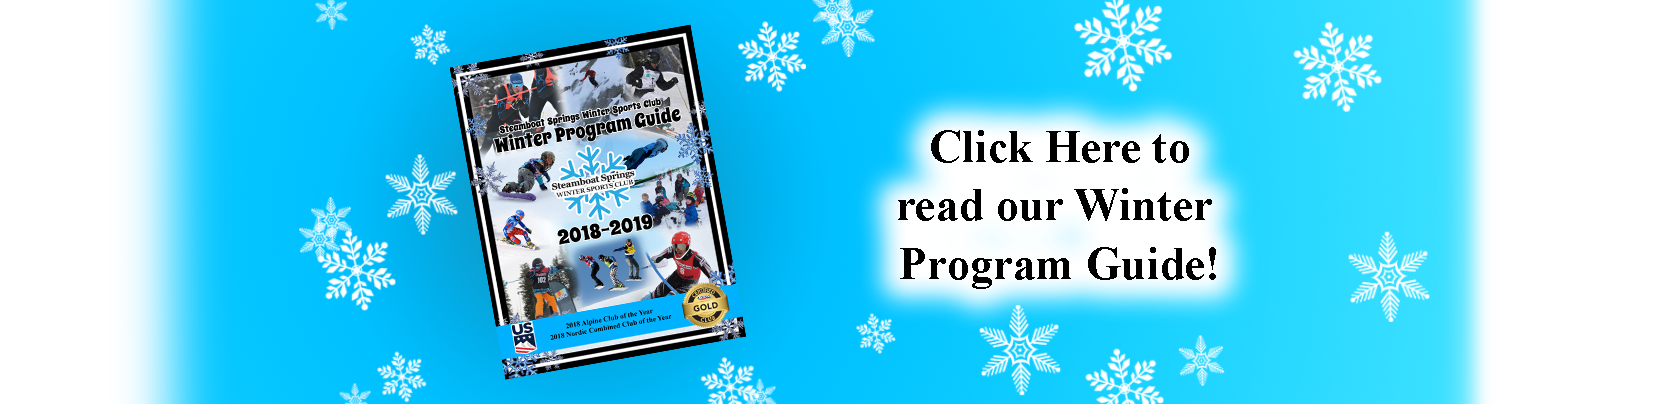 Winter Program guide